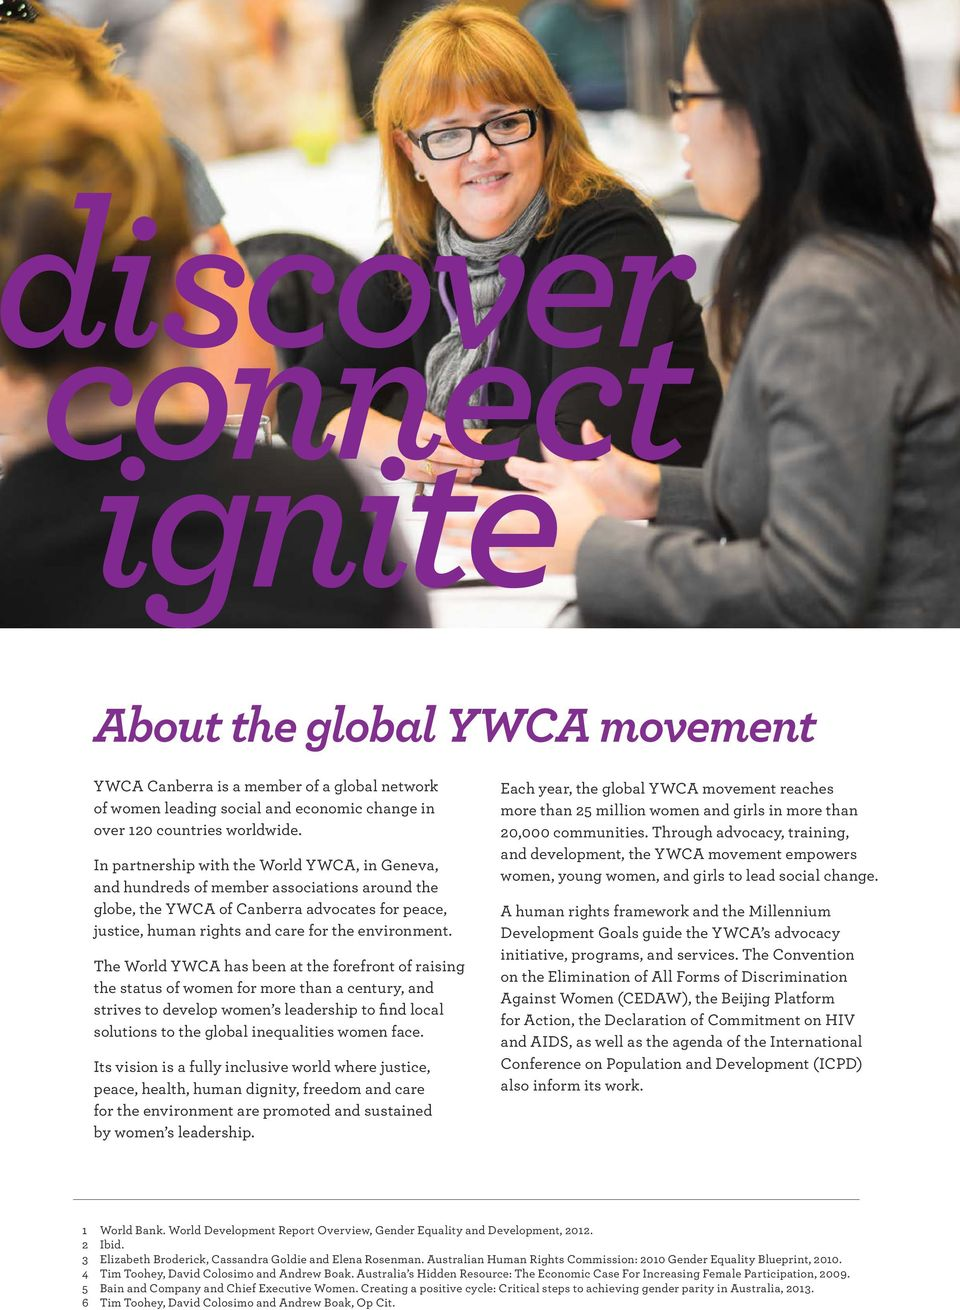 The World YWCA has been at the forefront of raising the status of women for more than a century, and strives to develop women s leadership to find local solutions to the global inequalities women